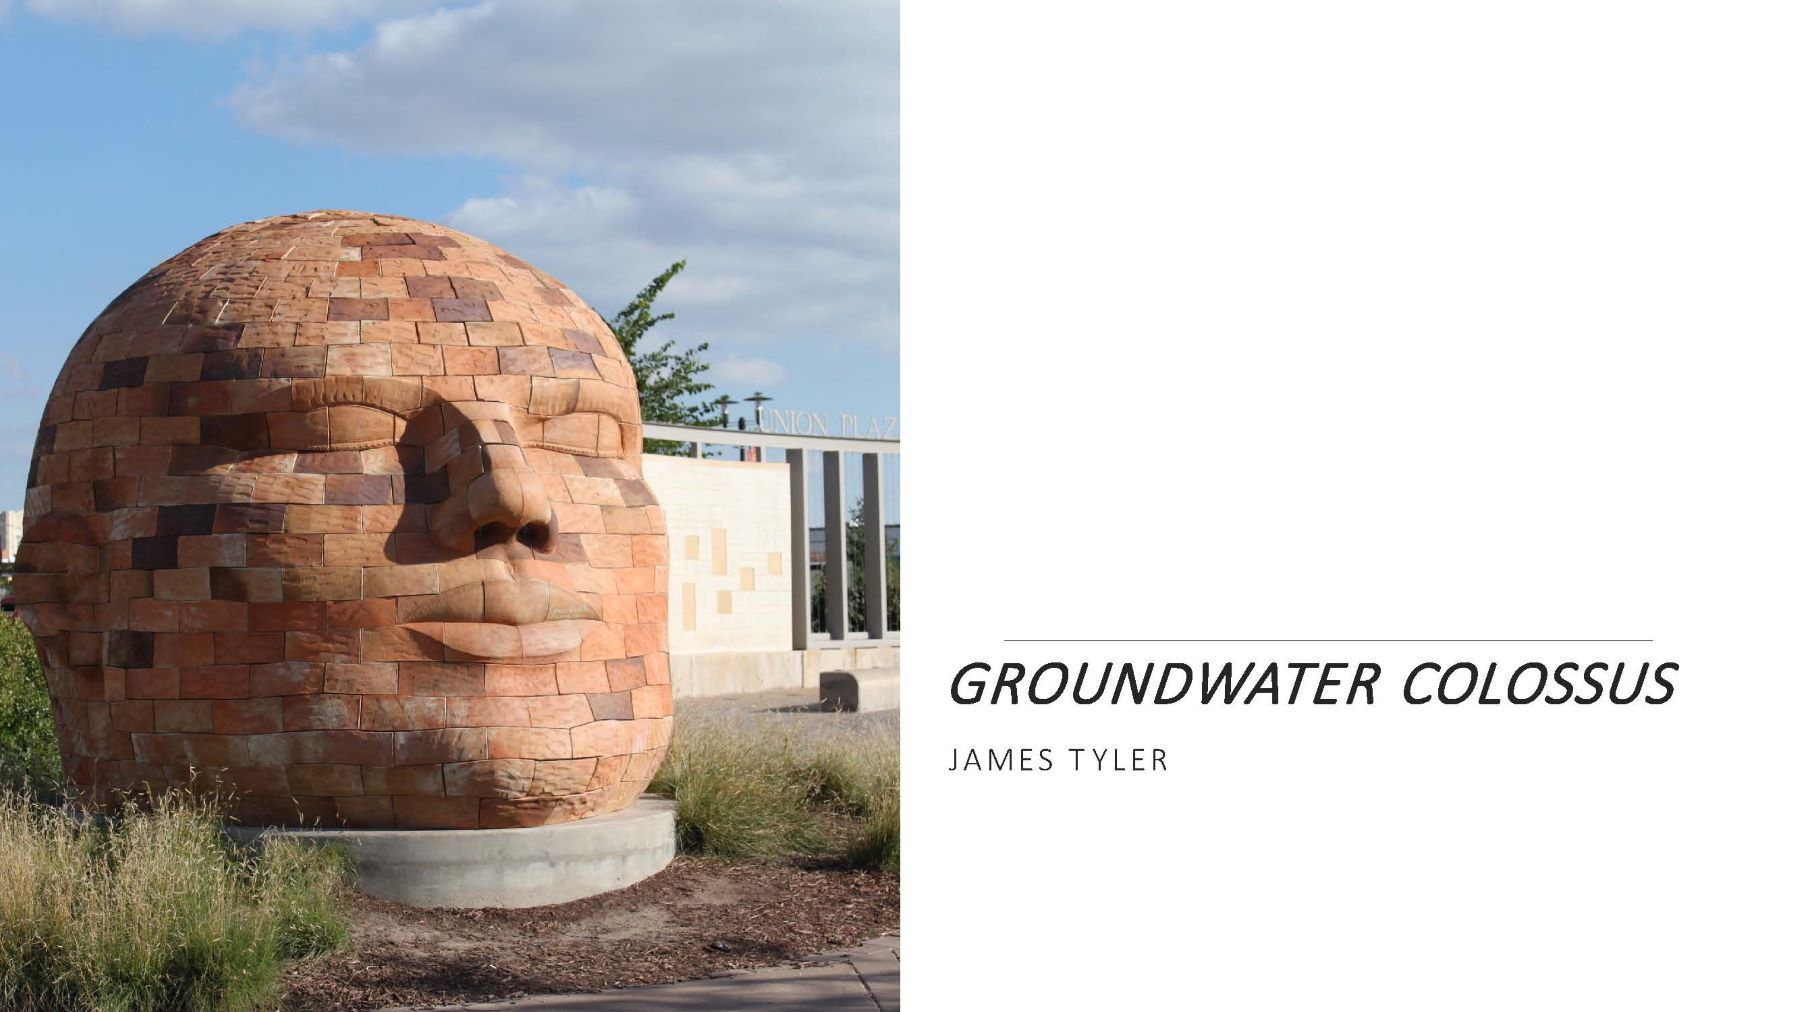 Groundwater Colossus / James Tyler